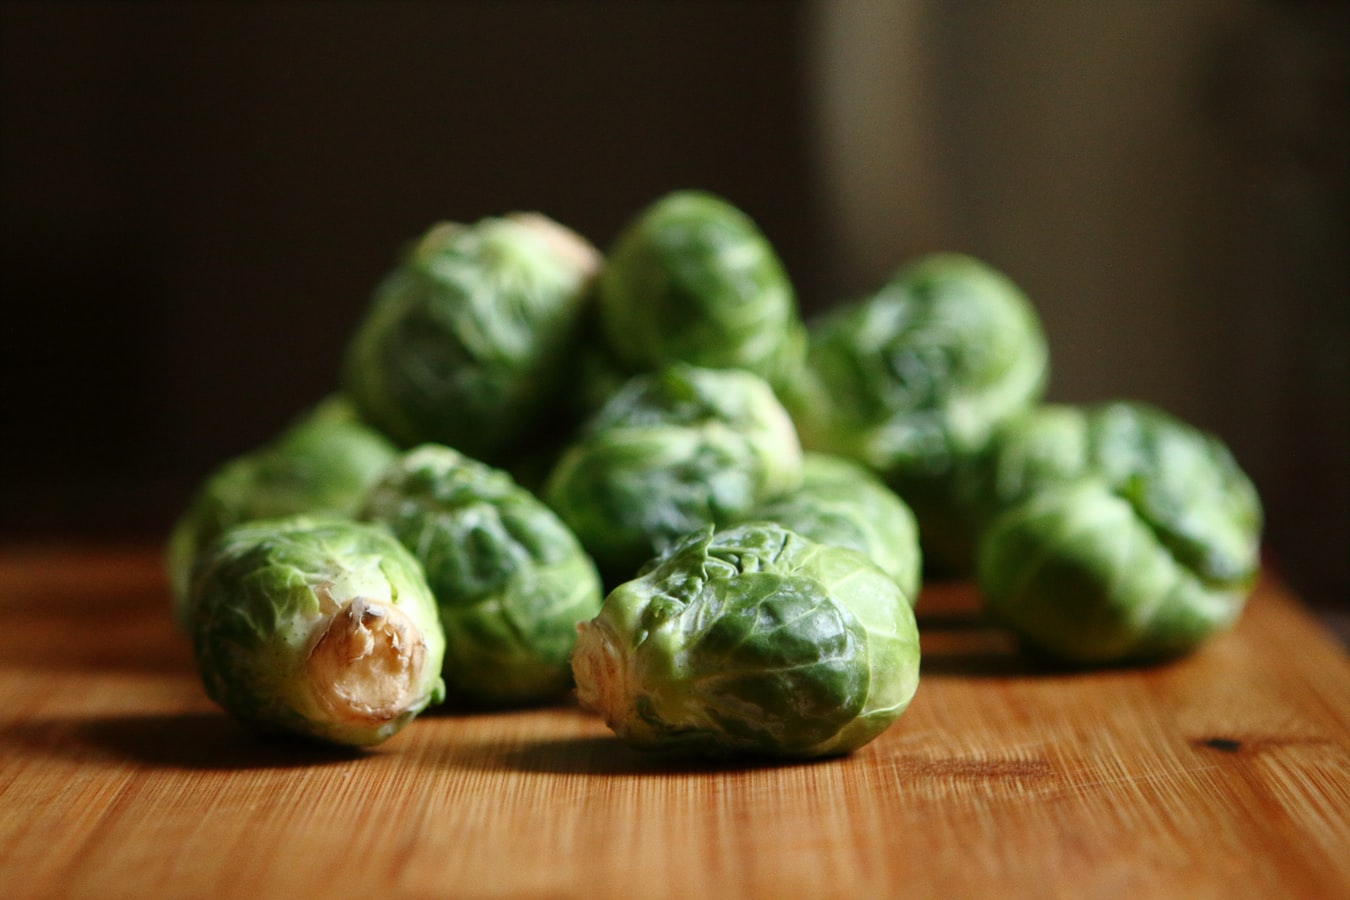 Brussels Sprouts Make Healthy Eating Delicious and Easy